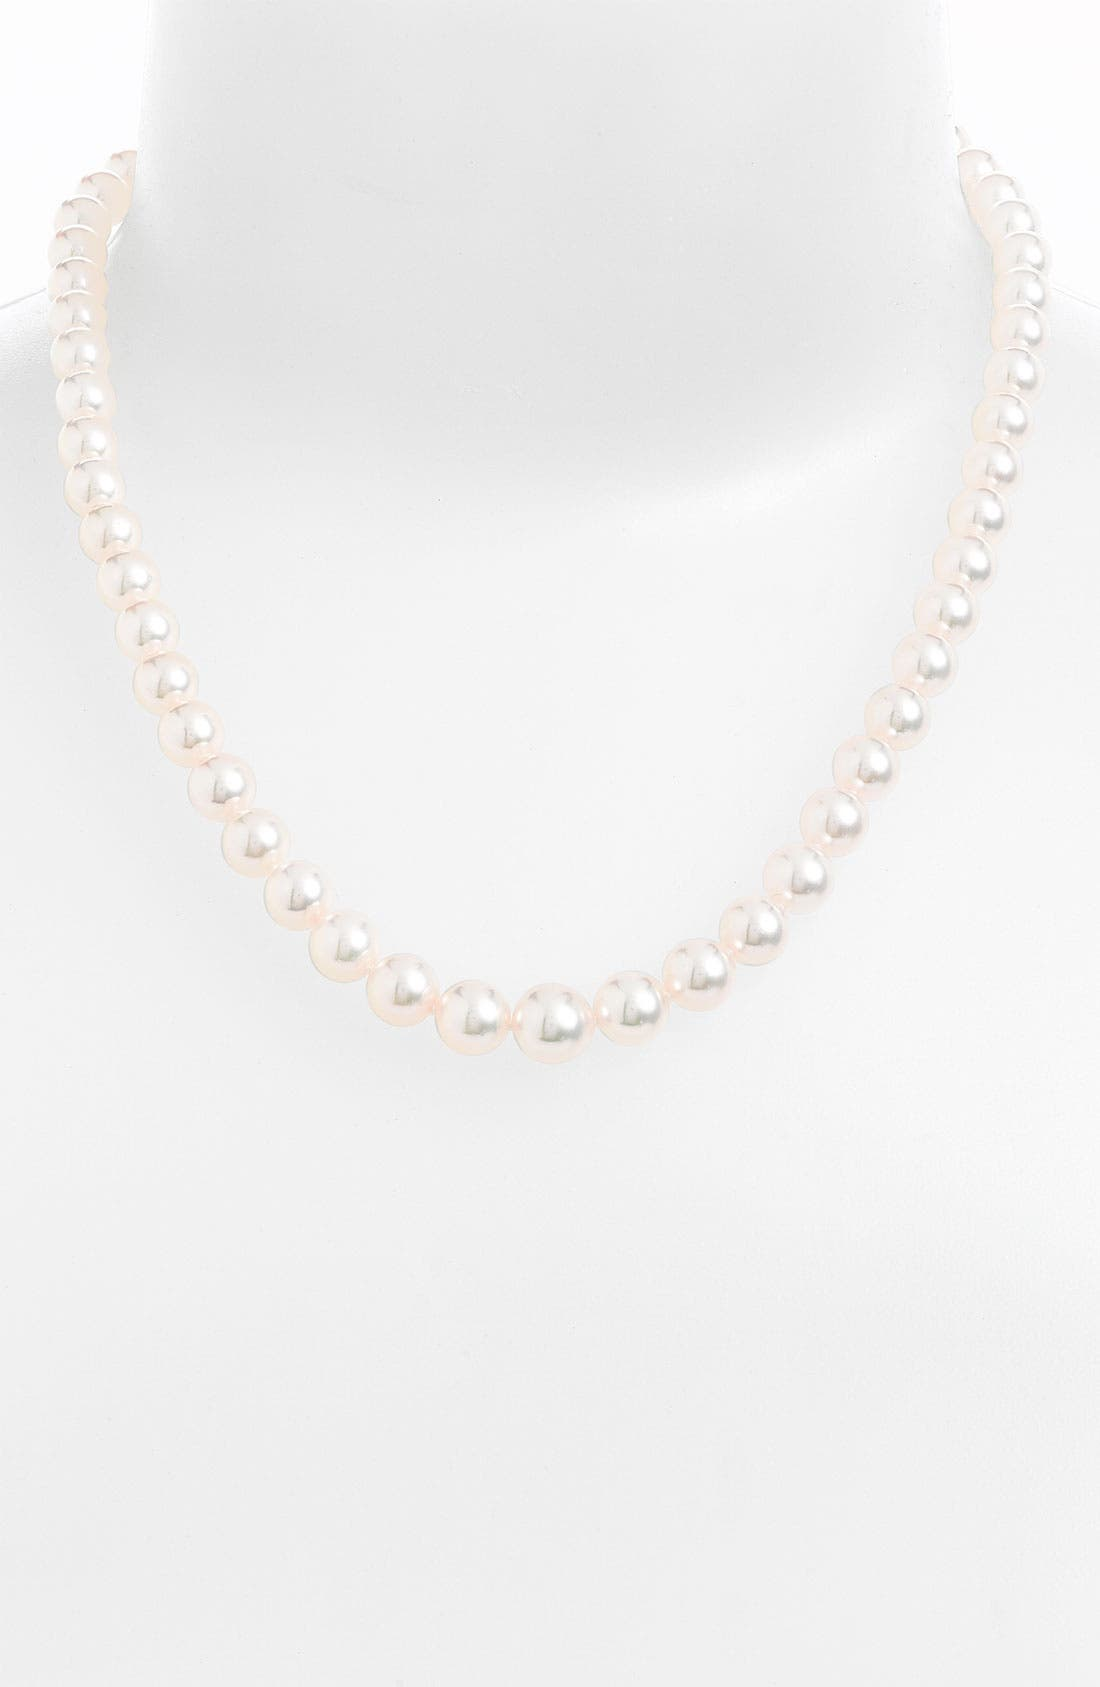 Graduated Pearl Necklace,                             Main thumbnail 1, color,                             AKOYA PEARL